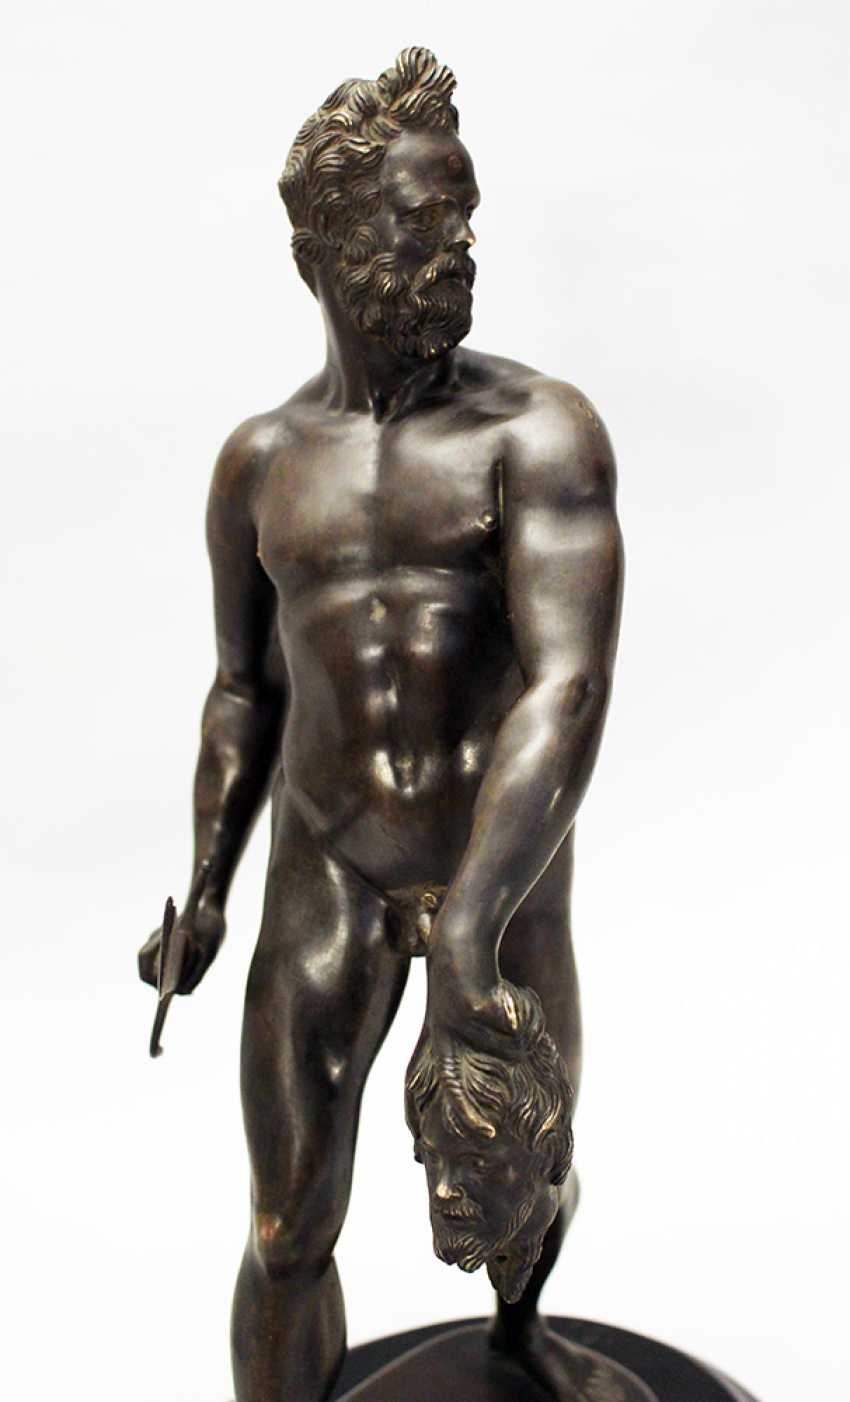 Giovanni da Bologna (1529-1608)-follower, Bronze sculpture of a walking naked warrior with male head and sword in the hands - photo 2